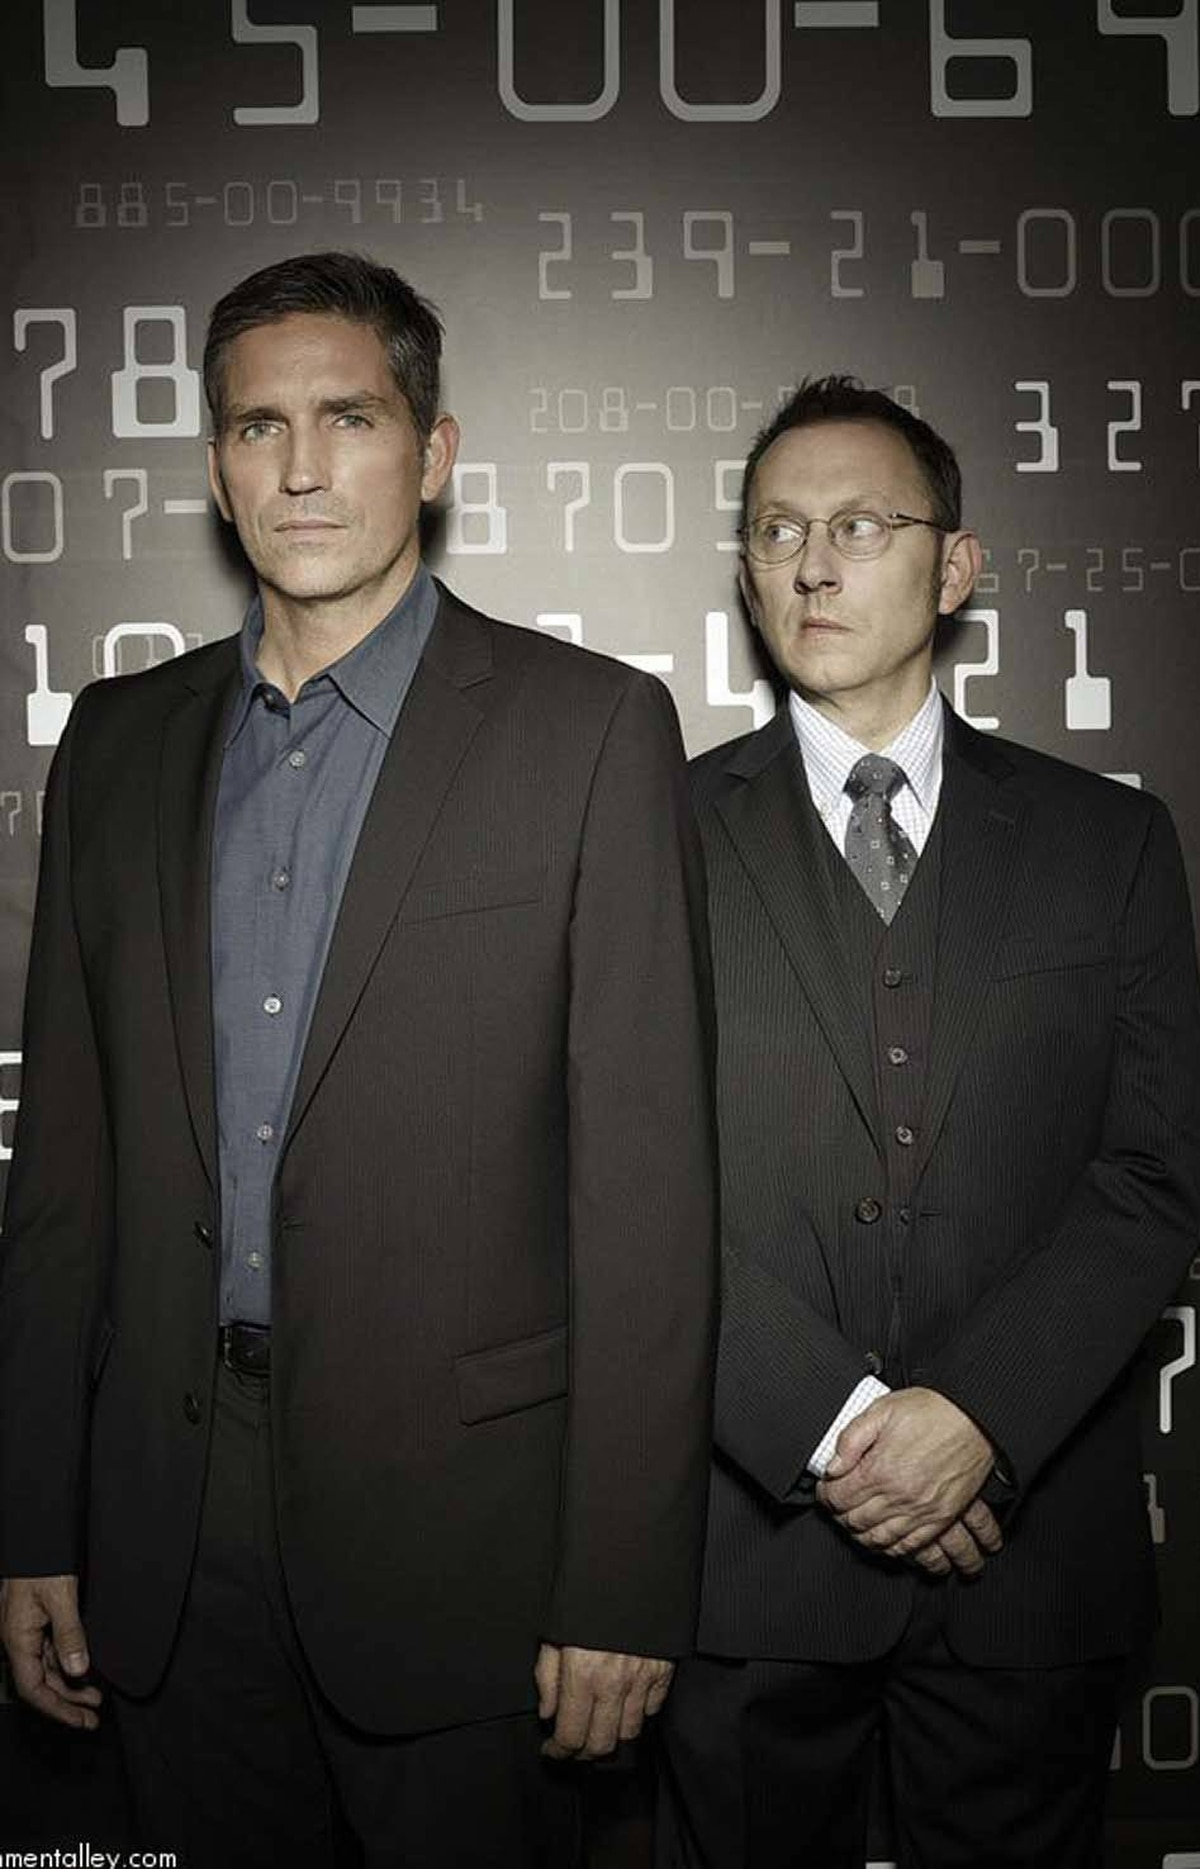 DRAMA Person of Interest CBS, CITY-TV, 9 p.m. ET/PT Since this new crime drama has already been renewed for a second season, it's presumably safe for viewers to start learning more about the main characters. One of the few breakout hits, the show's premise stars former Lost regular Michael Emerson as Finch, a computer genius who devises a program that identifies a person about to commit a crime. To help prevent the crime from happening, Finch has enlisted the assistance of Reese (Jim Caviezel), a former CIA operative with a mysterious past. We learn more about Reese in tonight's episode when the program puts him undercover on an armoured truck crew, which causes him to have flashbacks about his final CIA mission that forced him to make some tragic decisions.